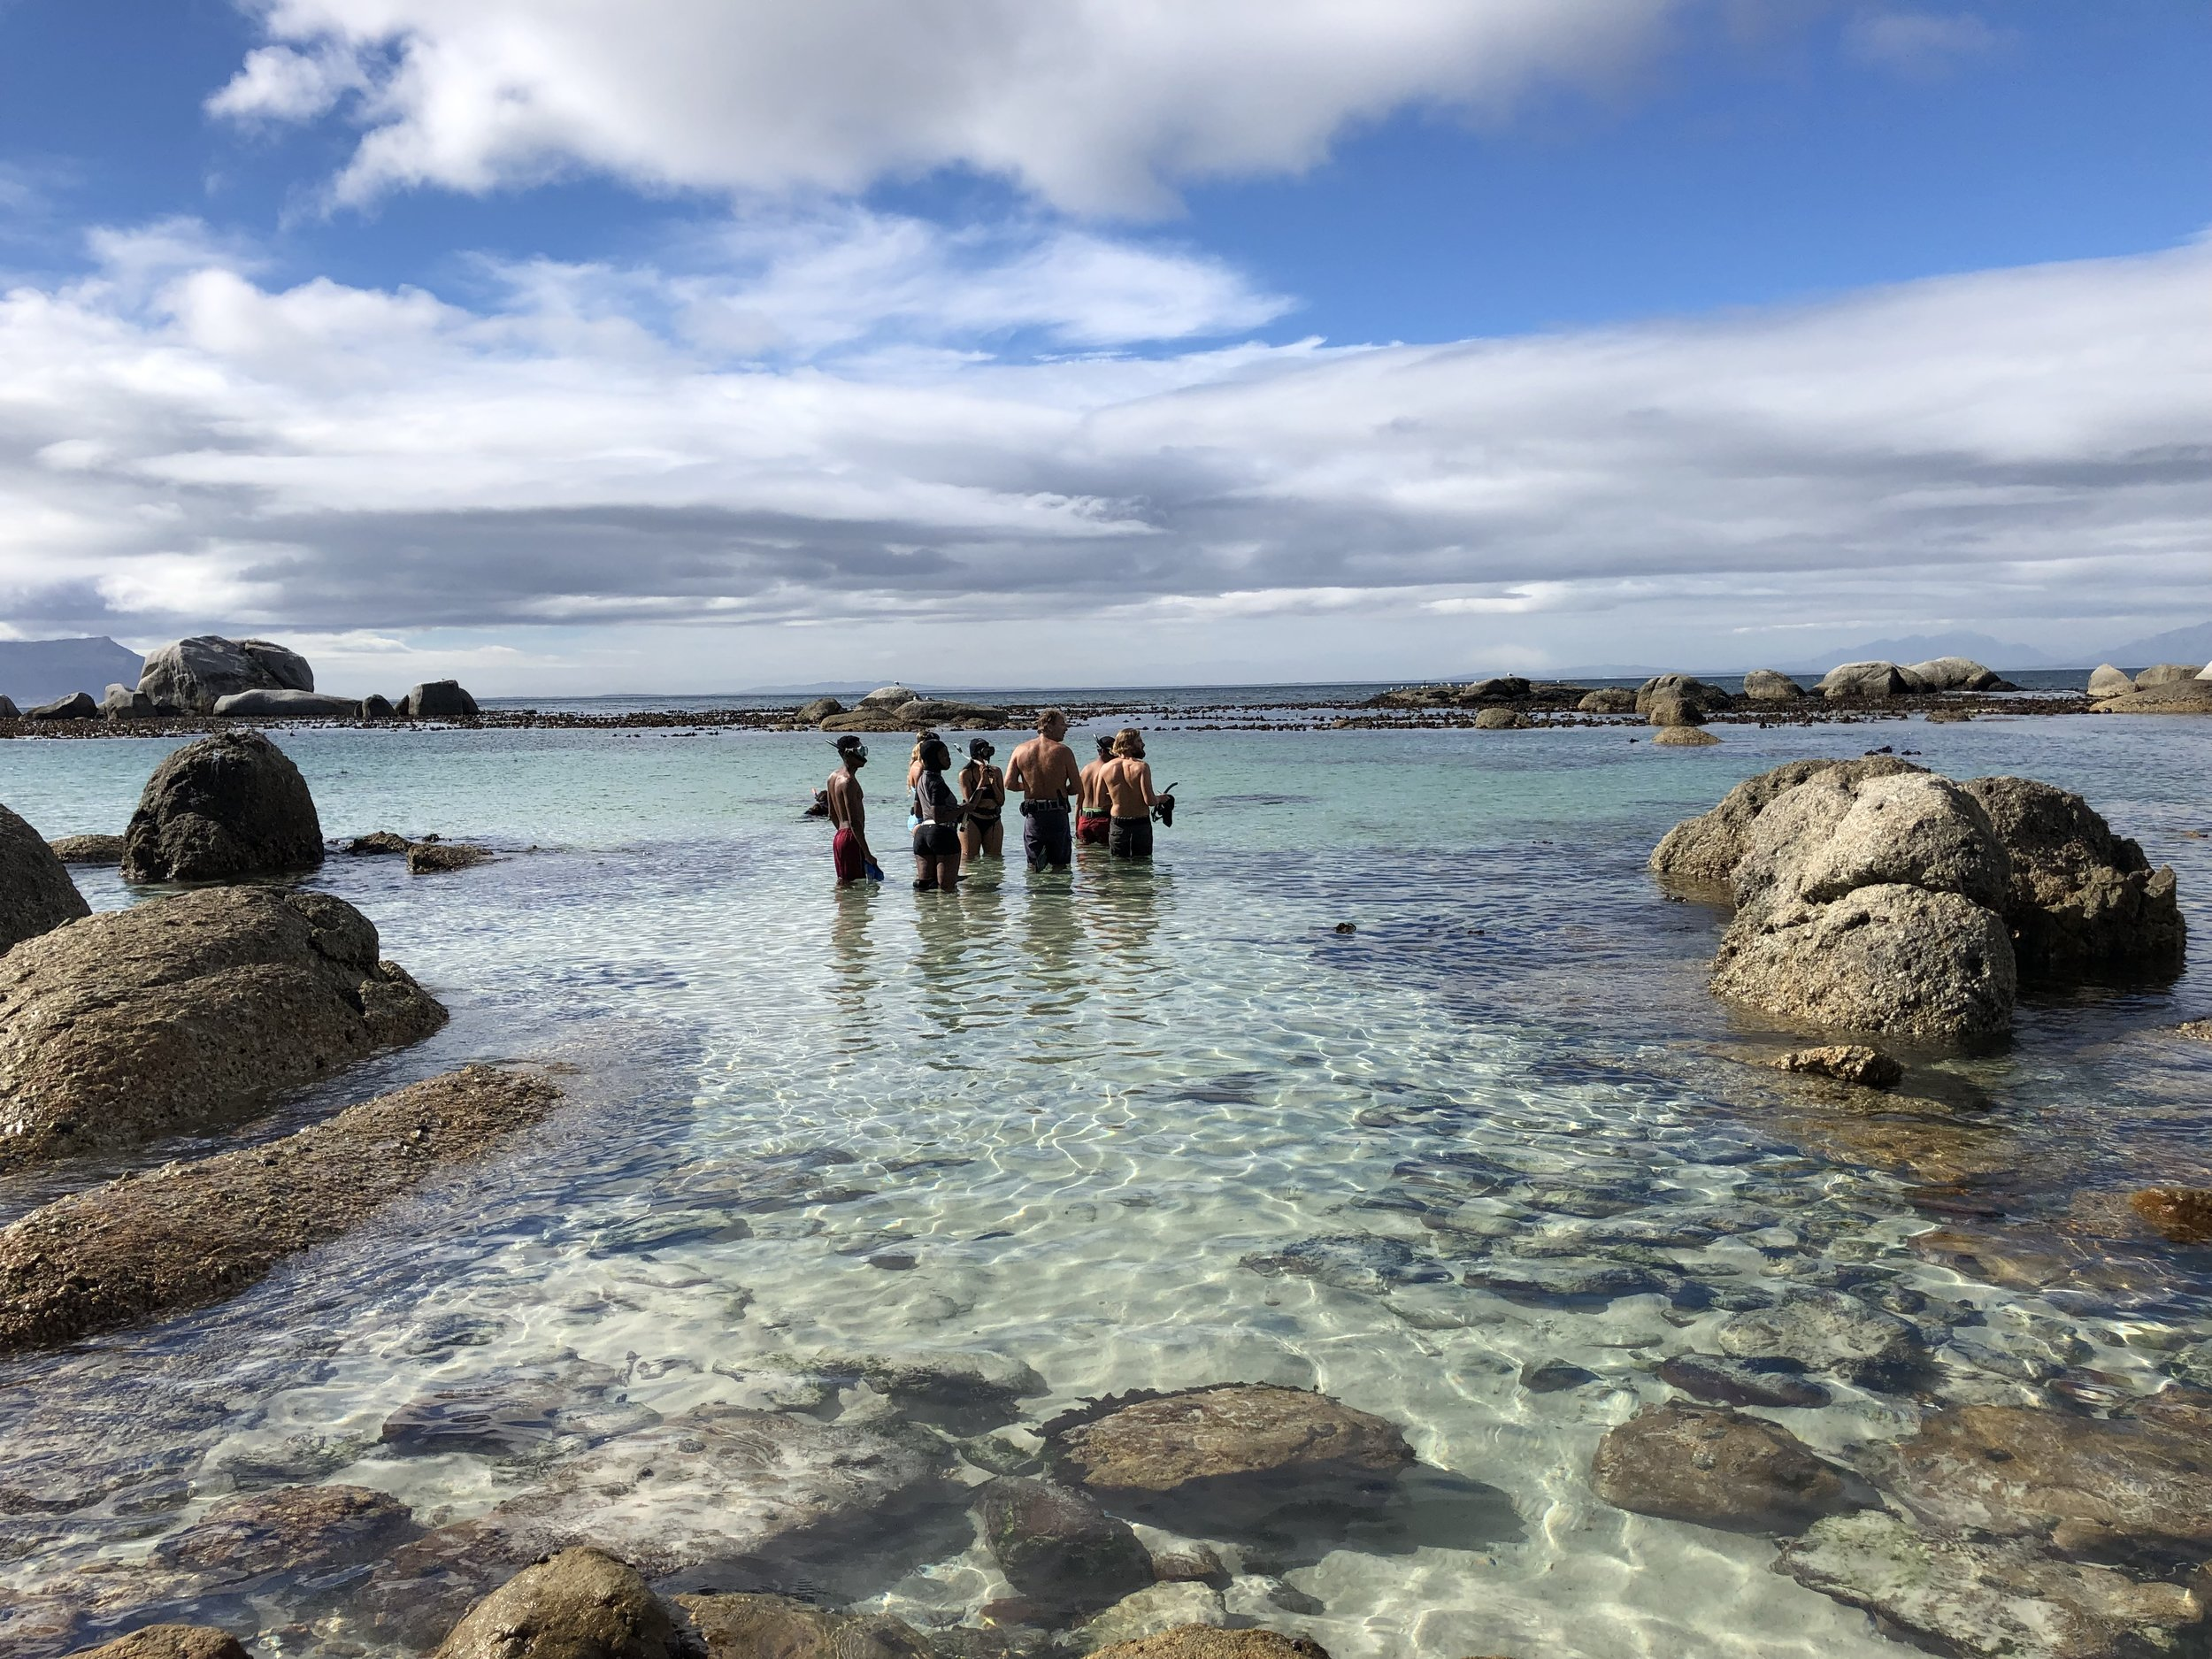 Craig Foster, the Sea Change Team and SANBI scientists preparing to dive into the Kelp Forest near Simonstown, Cape Town March 2019